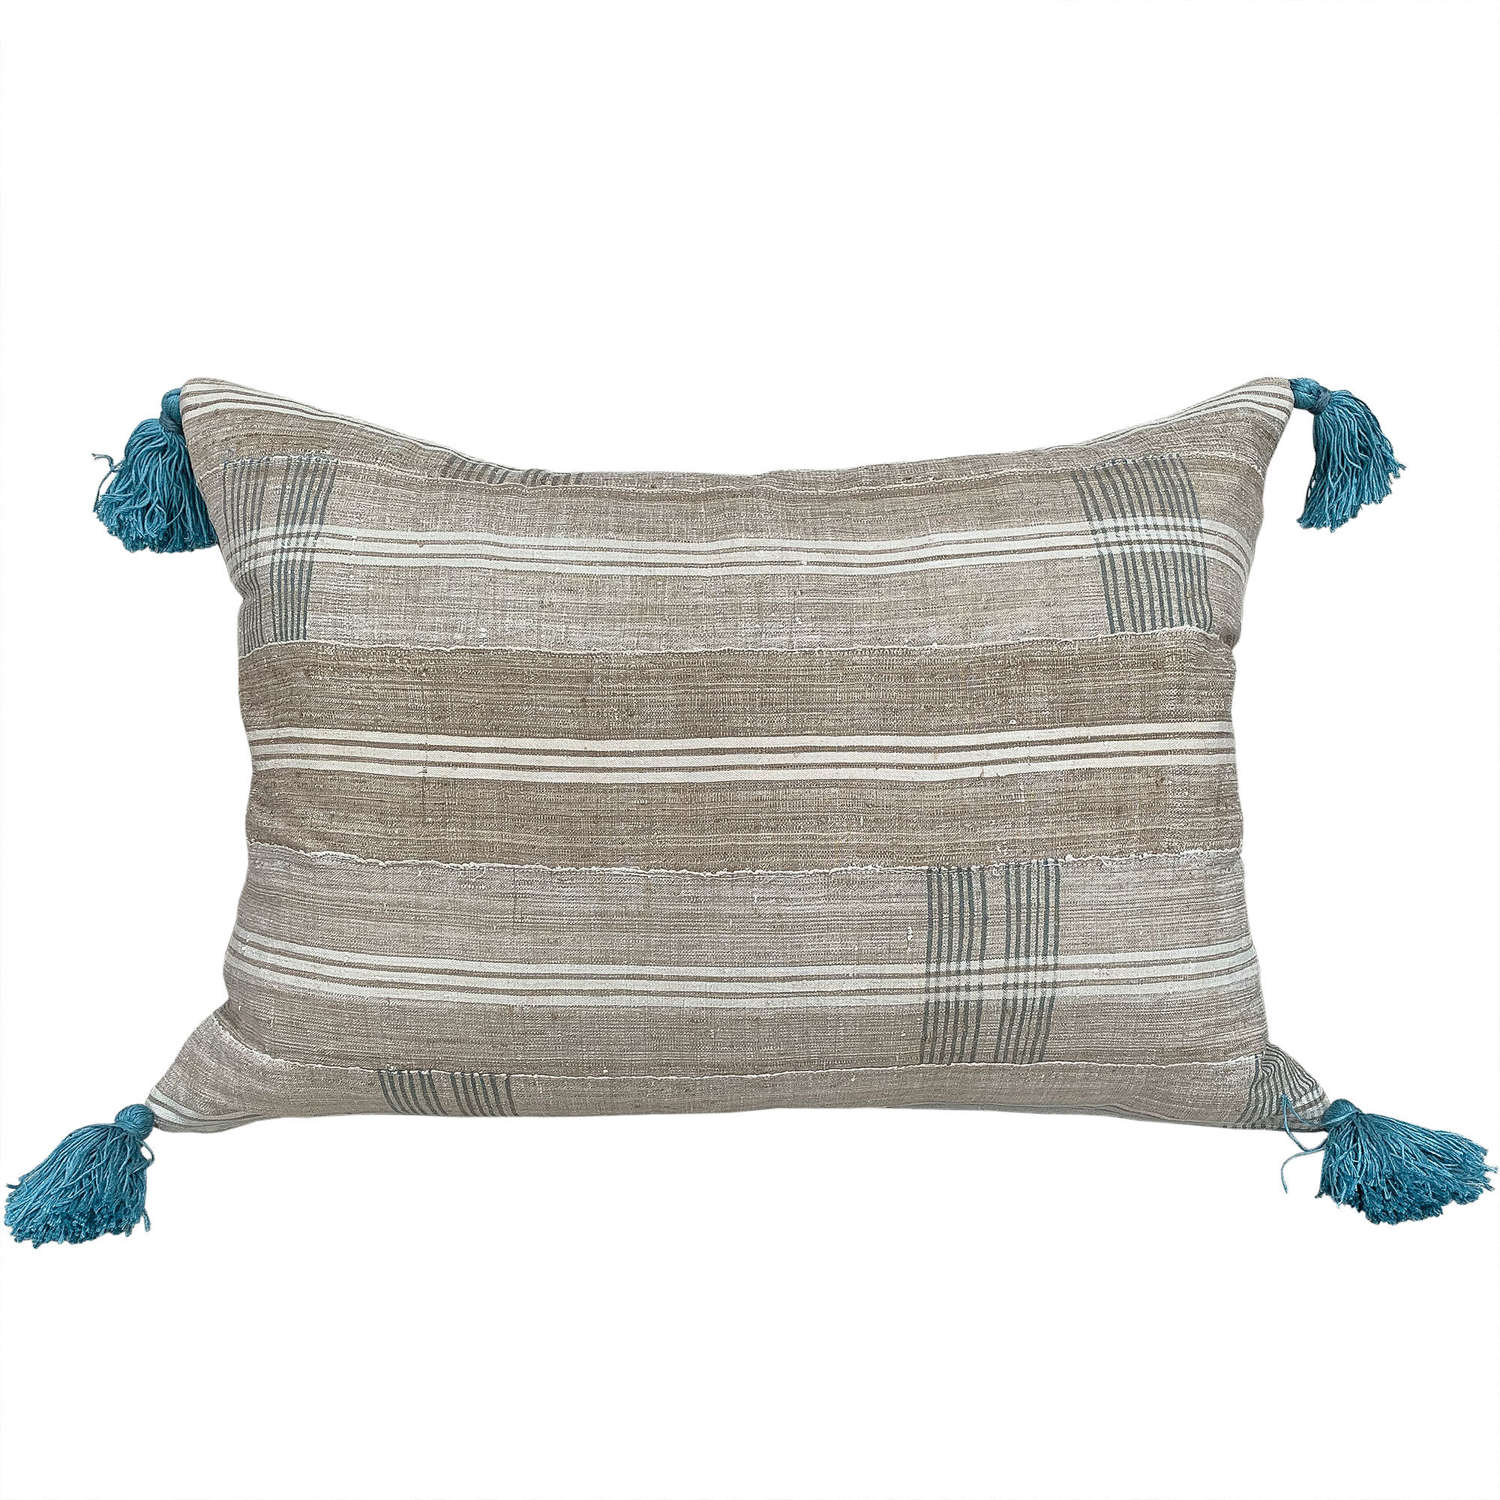 Yoruba cushion with tassels